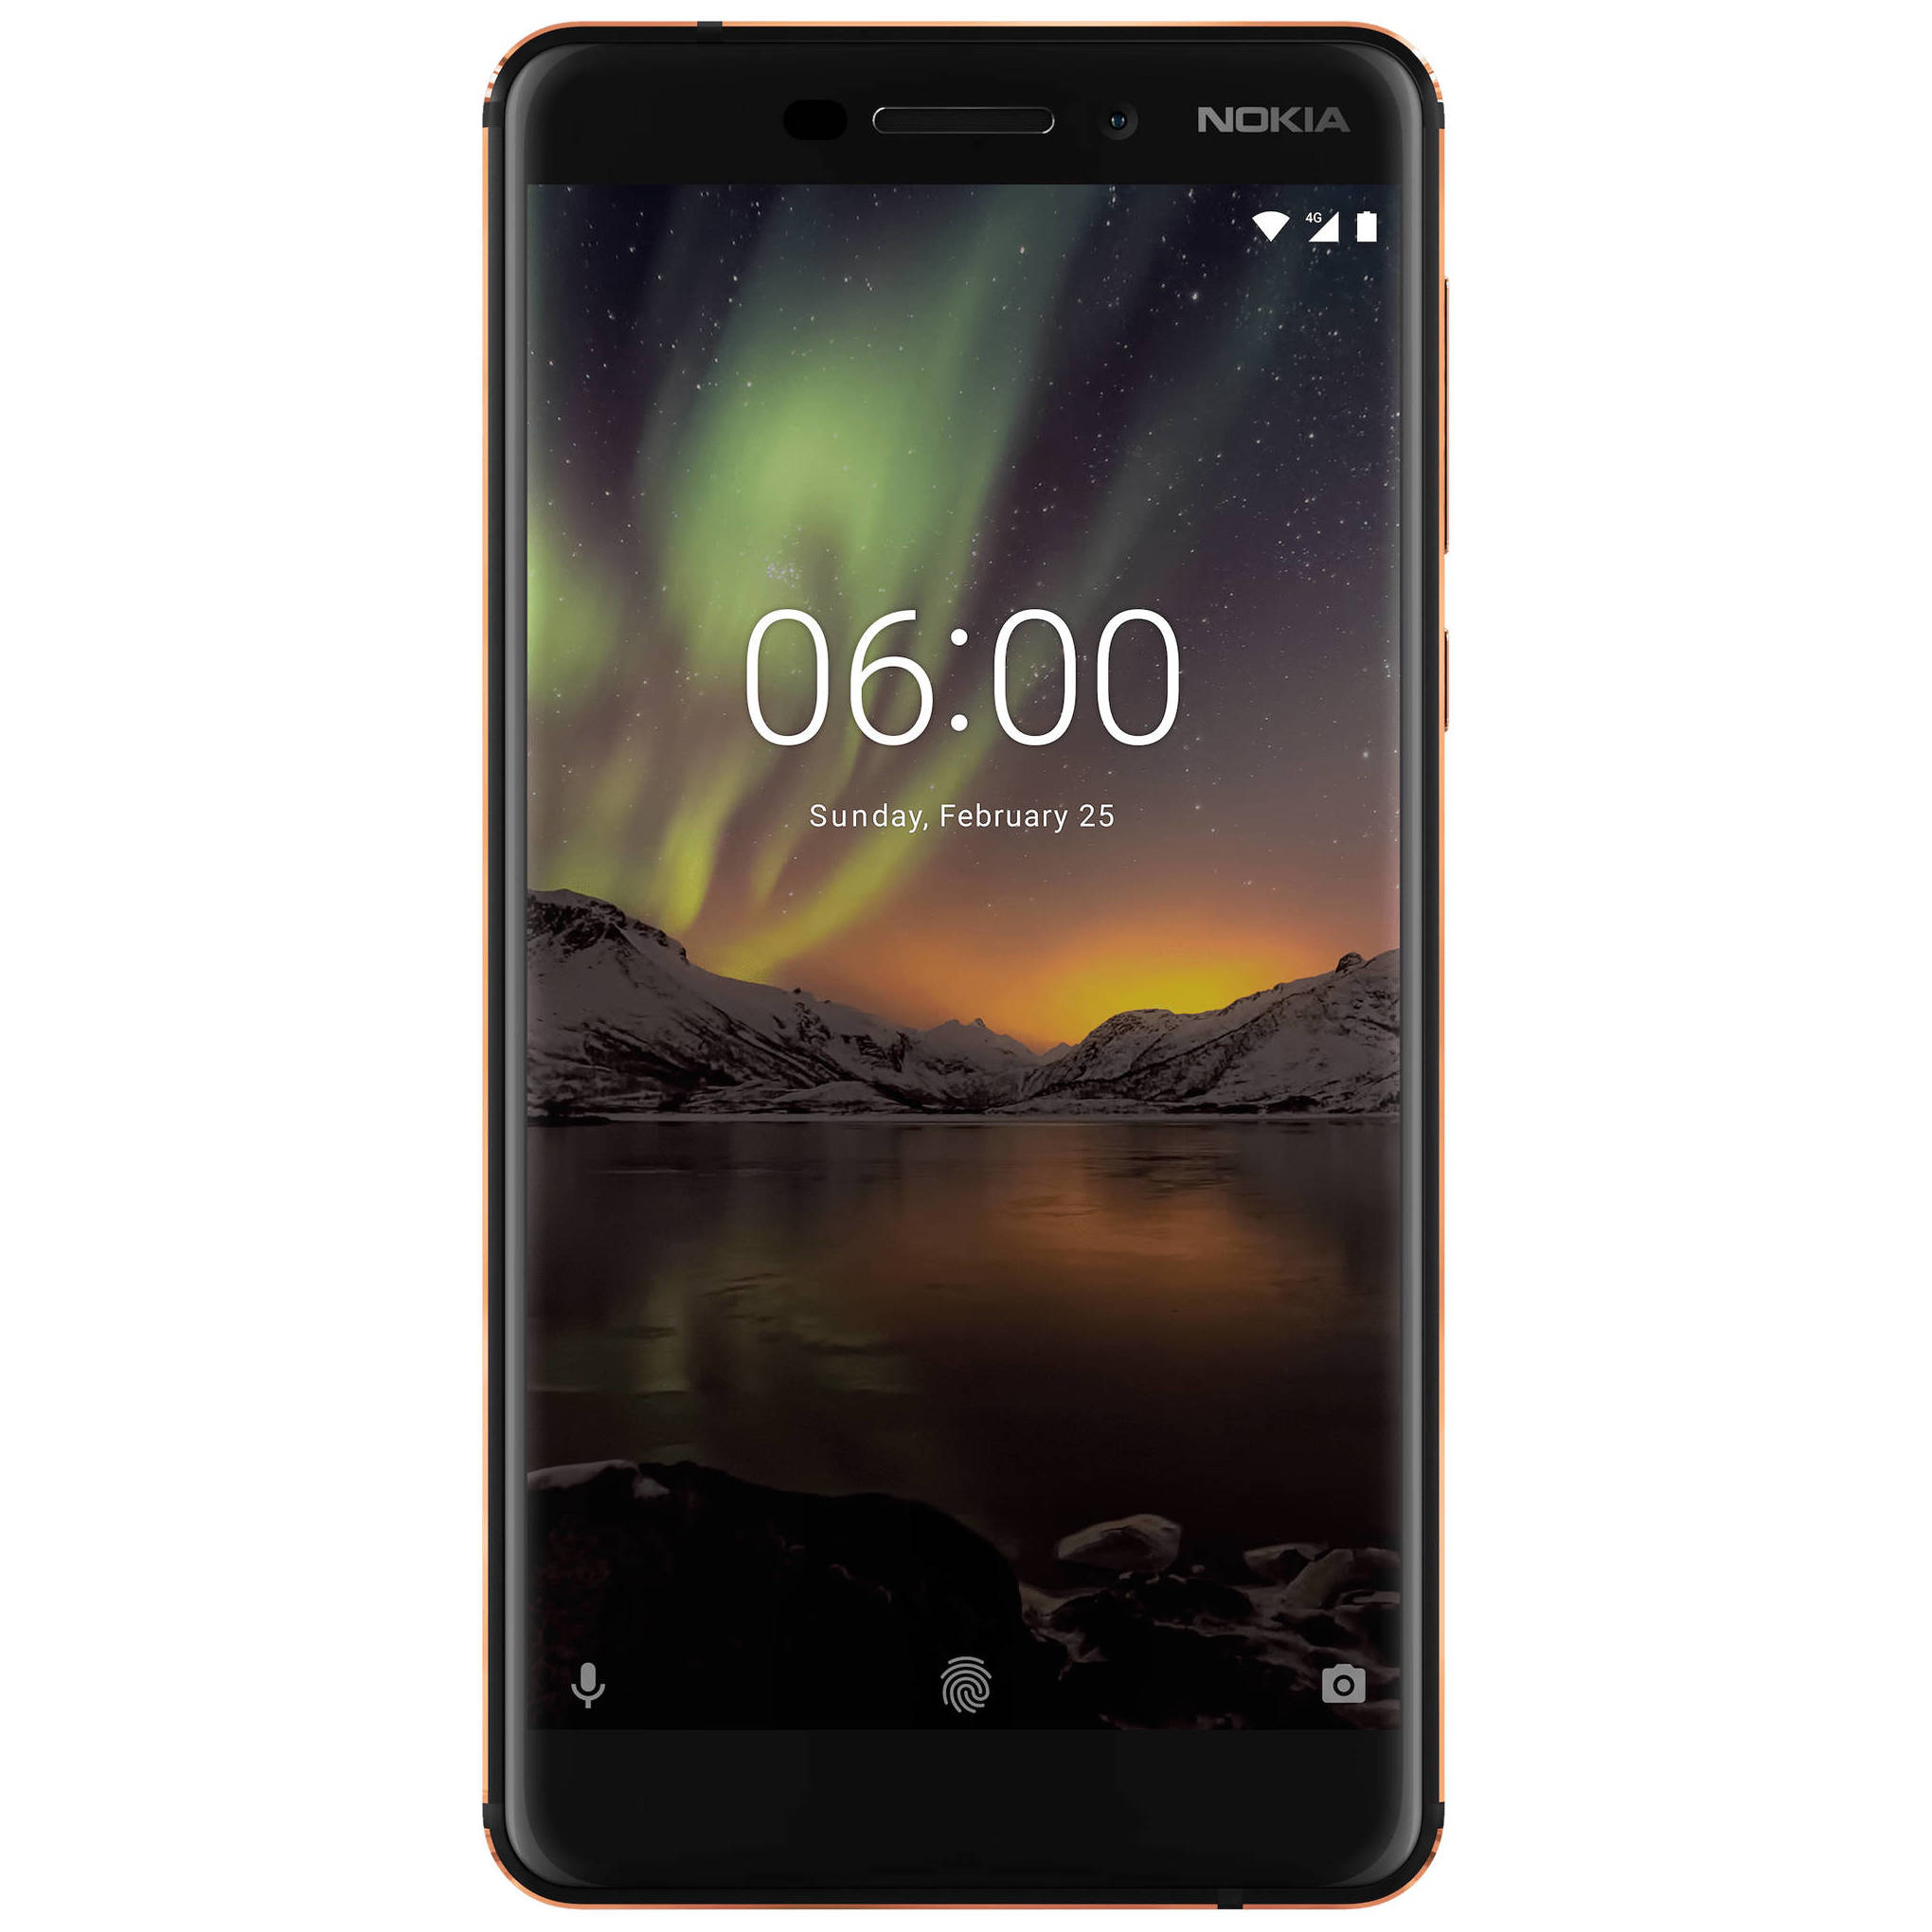 Nokia 6 Arte Black Video Nokia 6 4g Dual Sim Smartphone 32gb Matte Black Price In Oman